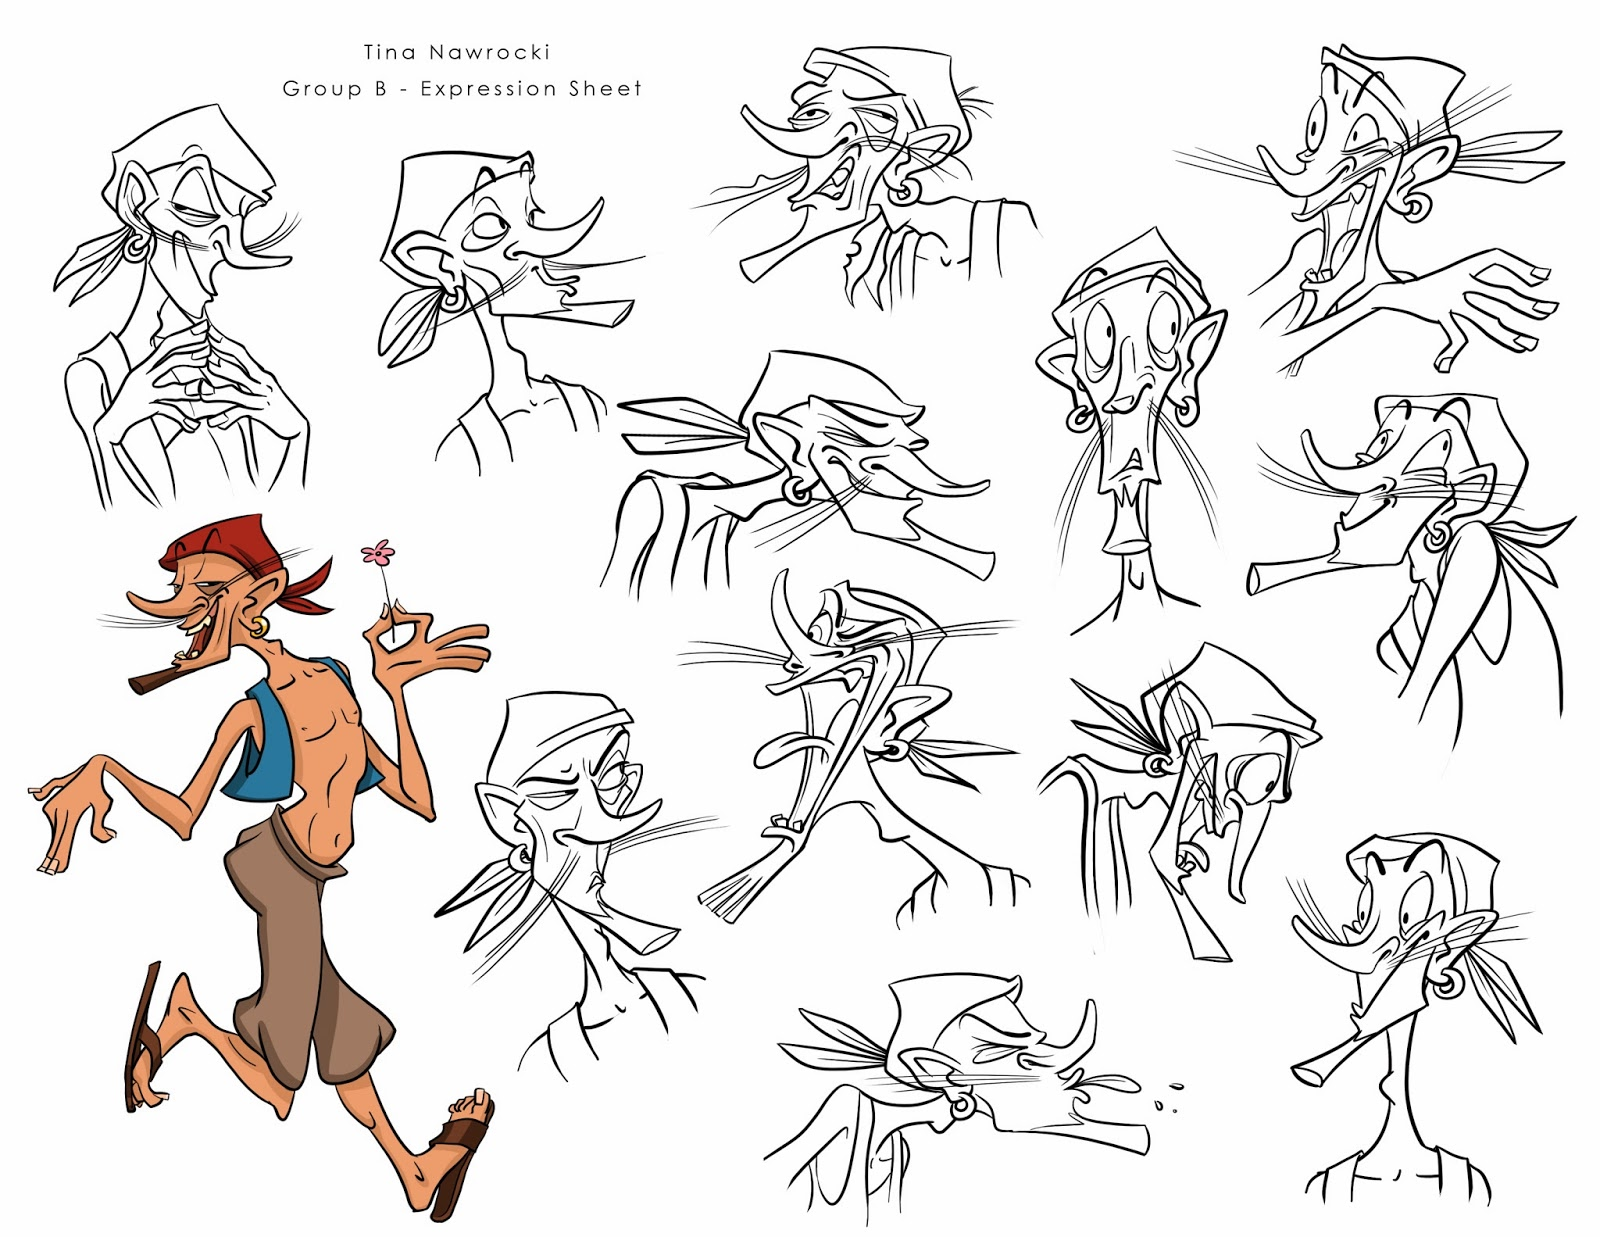 Character Design Reel : Tina nawrocki art and animation character design